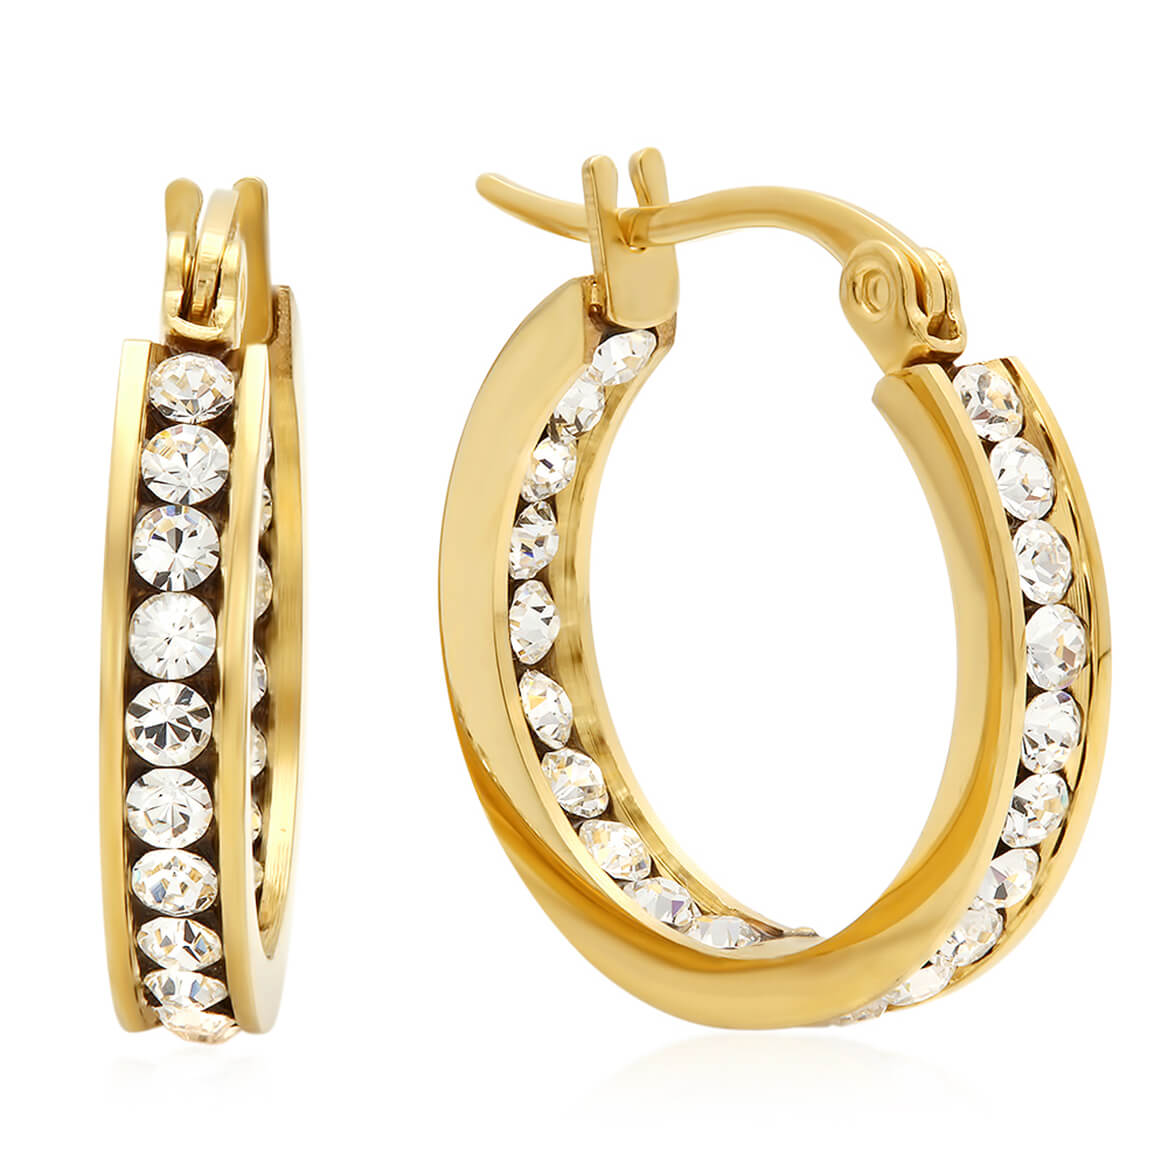 Swarovski Elements Hoop Earrings          VR